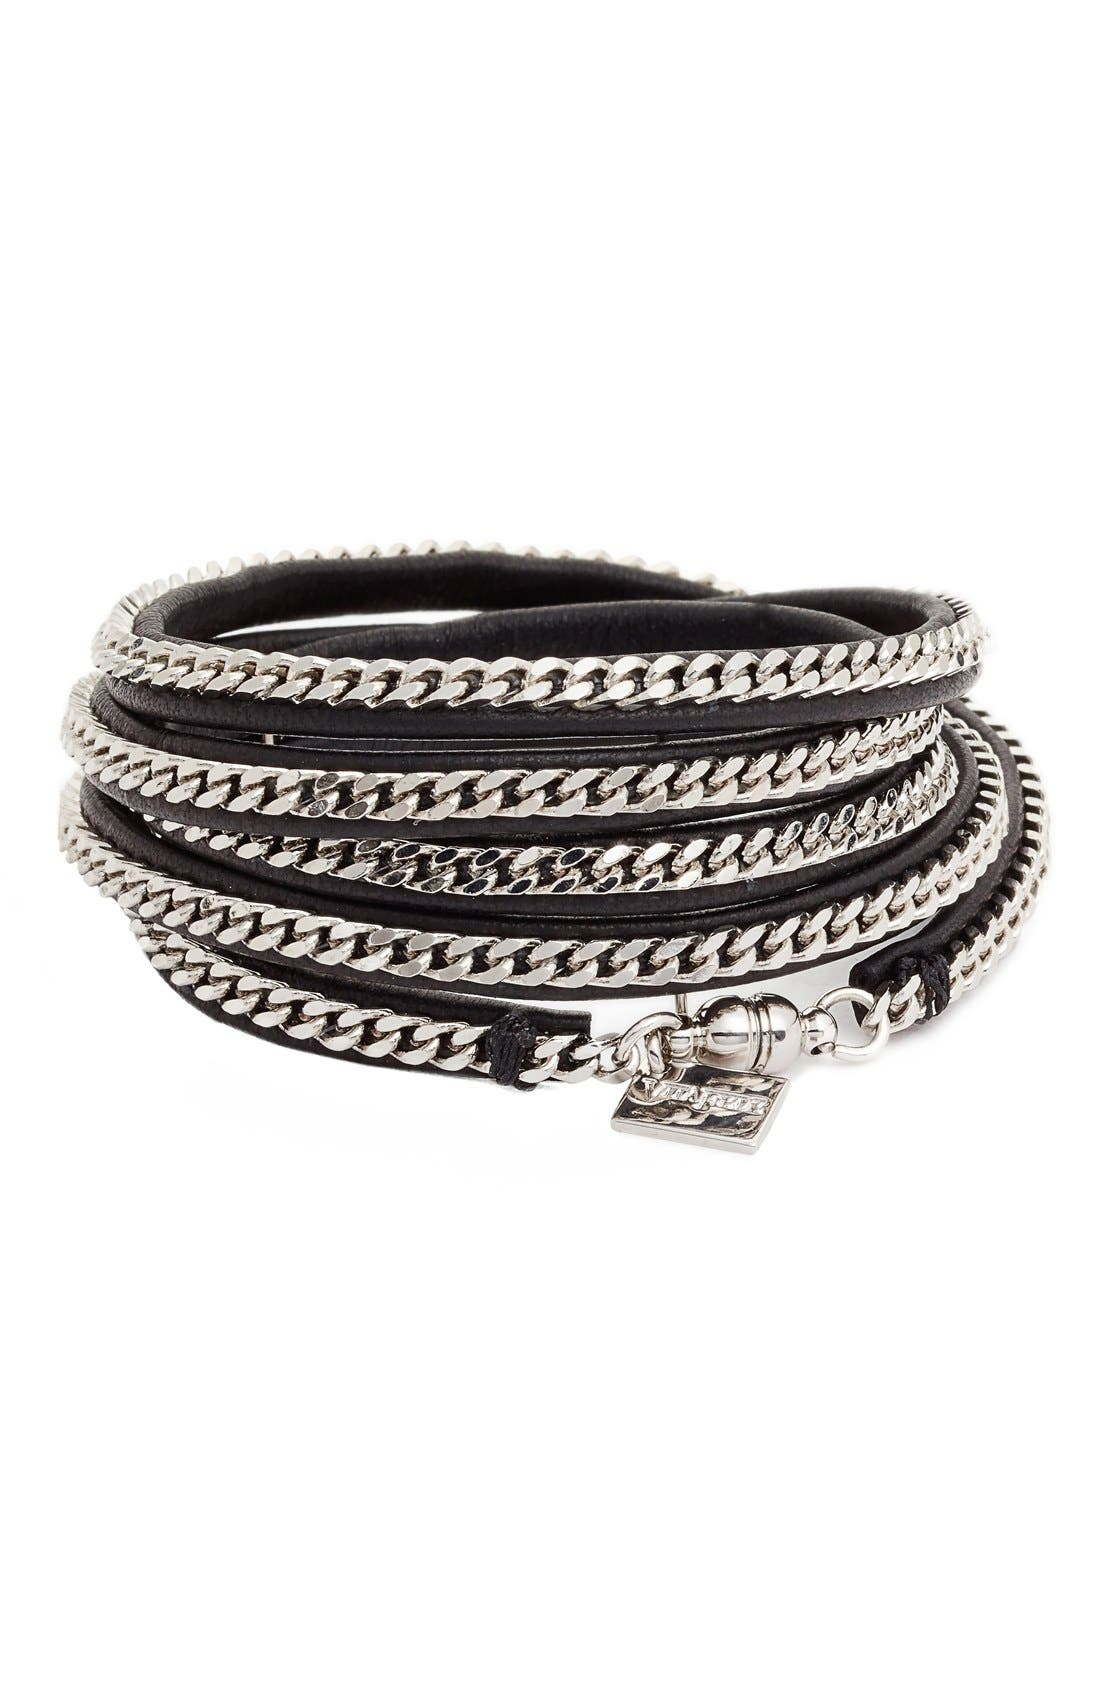 Alternate Image 1 Selected - Vita Fede Capri Wrap Bracelet